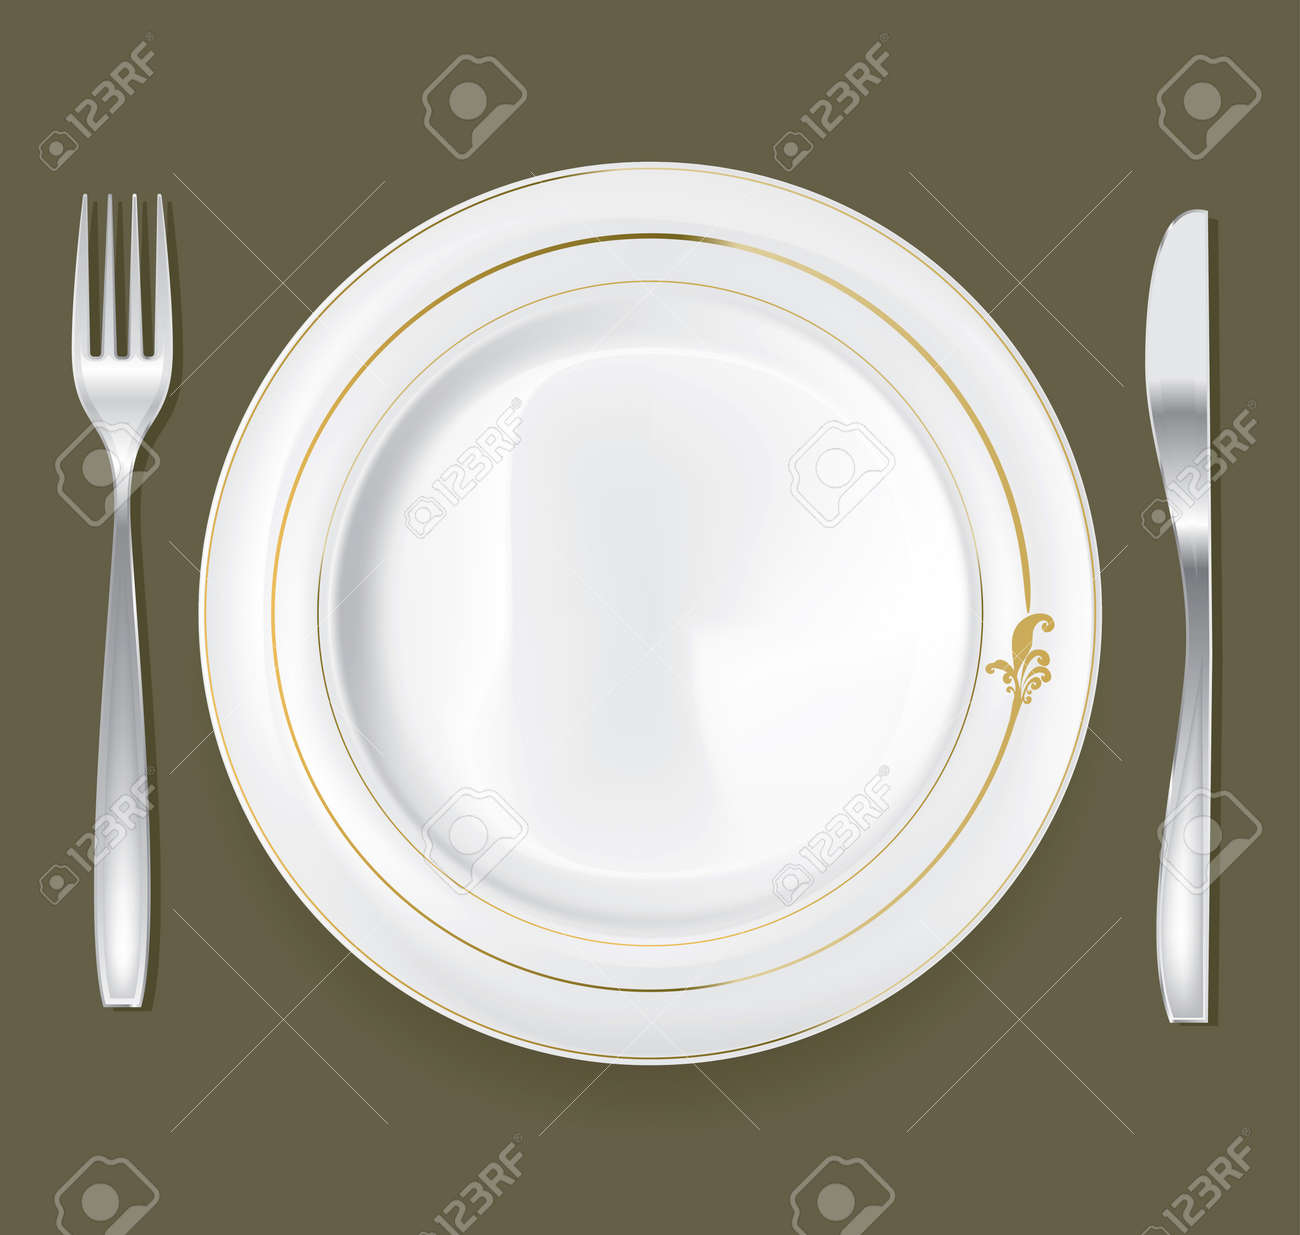 Empty Dinner Plate, Drawing The Knife And Fork Set Royalty Free ...